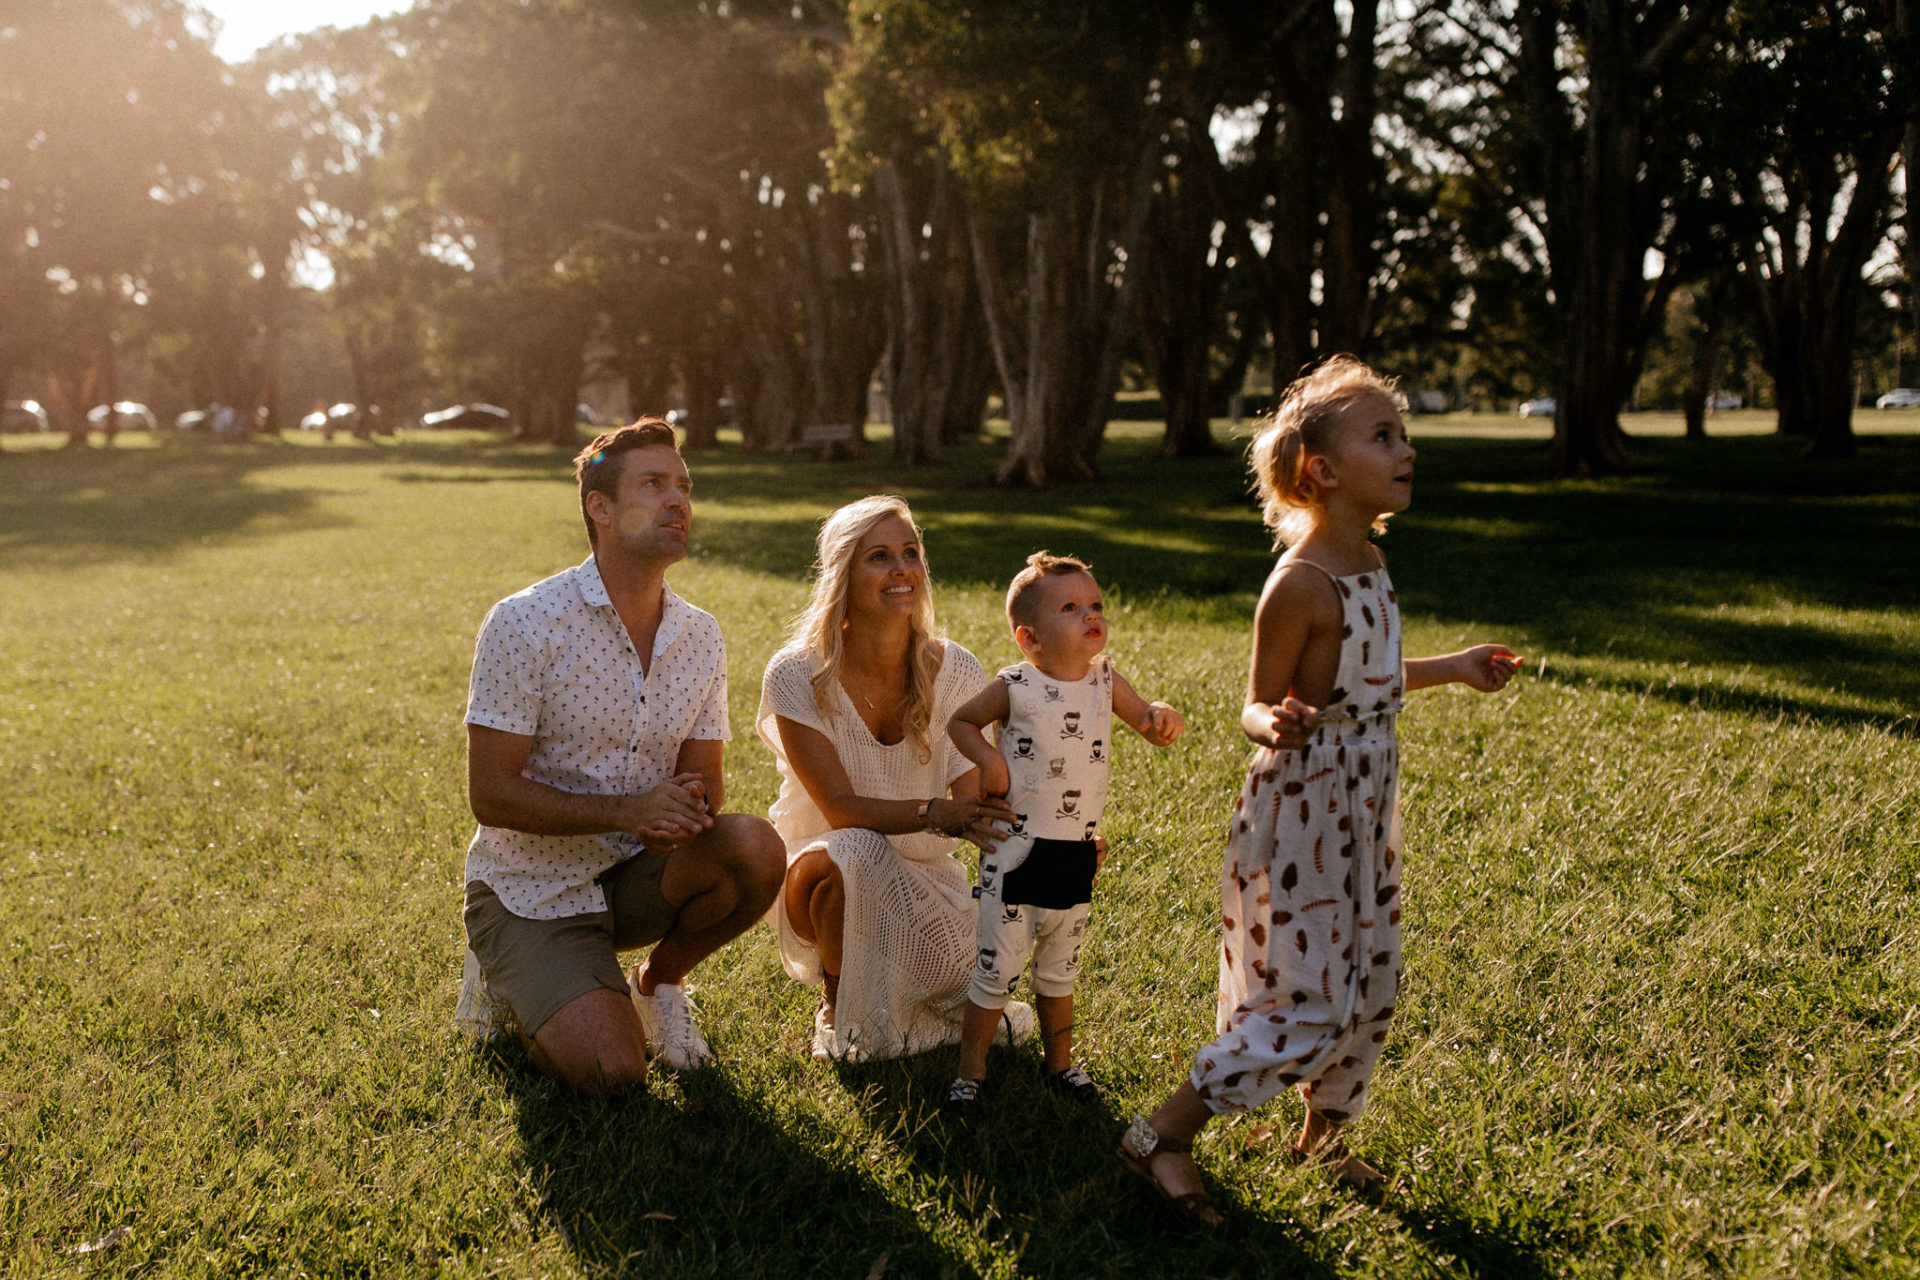 Sydney family photographer-homestory with kids-quirky documentary unposed wedding photography-melbourne family photography-candid moments-hip kids apparel-coogee beach park family time